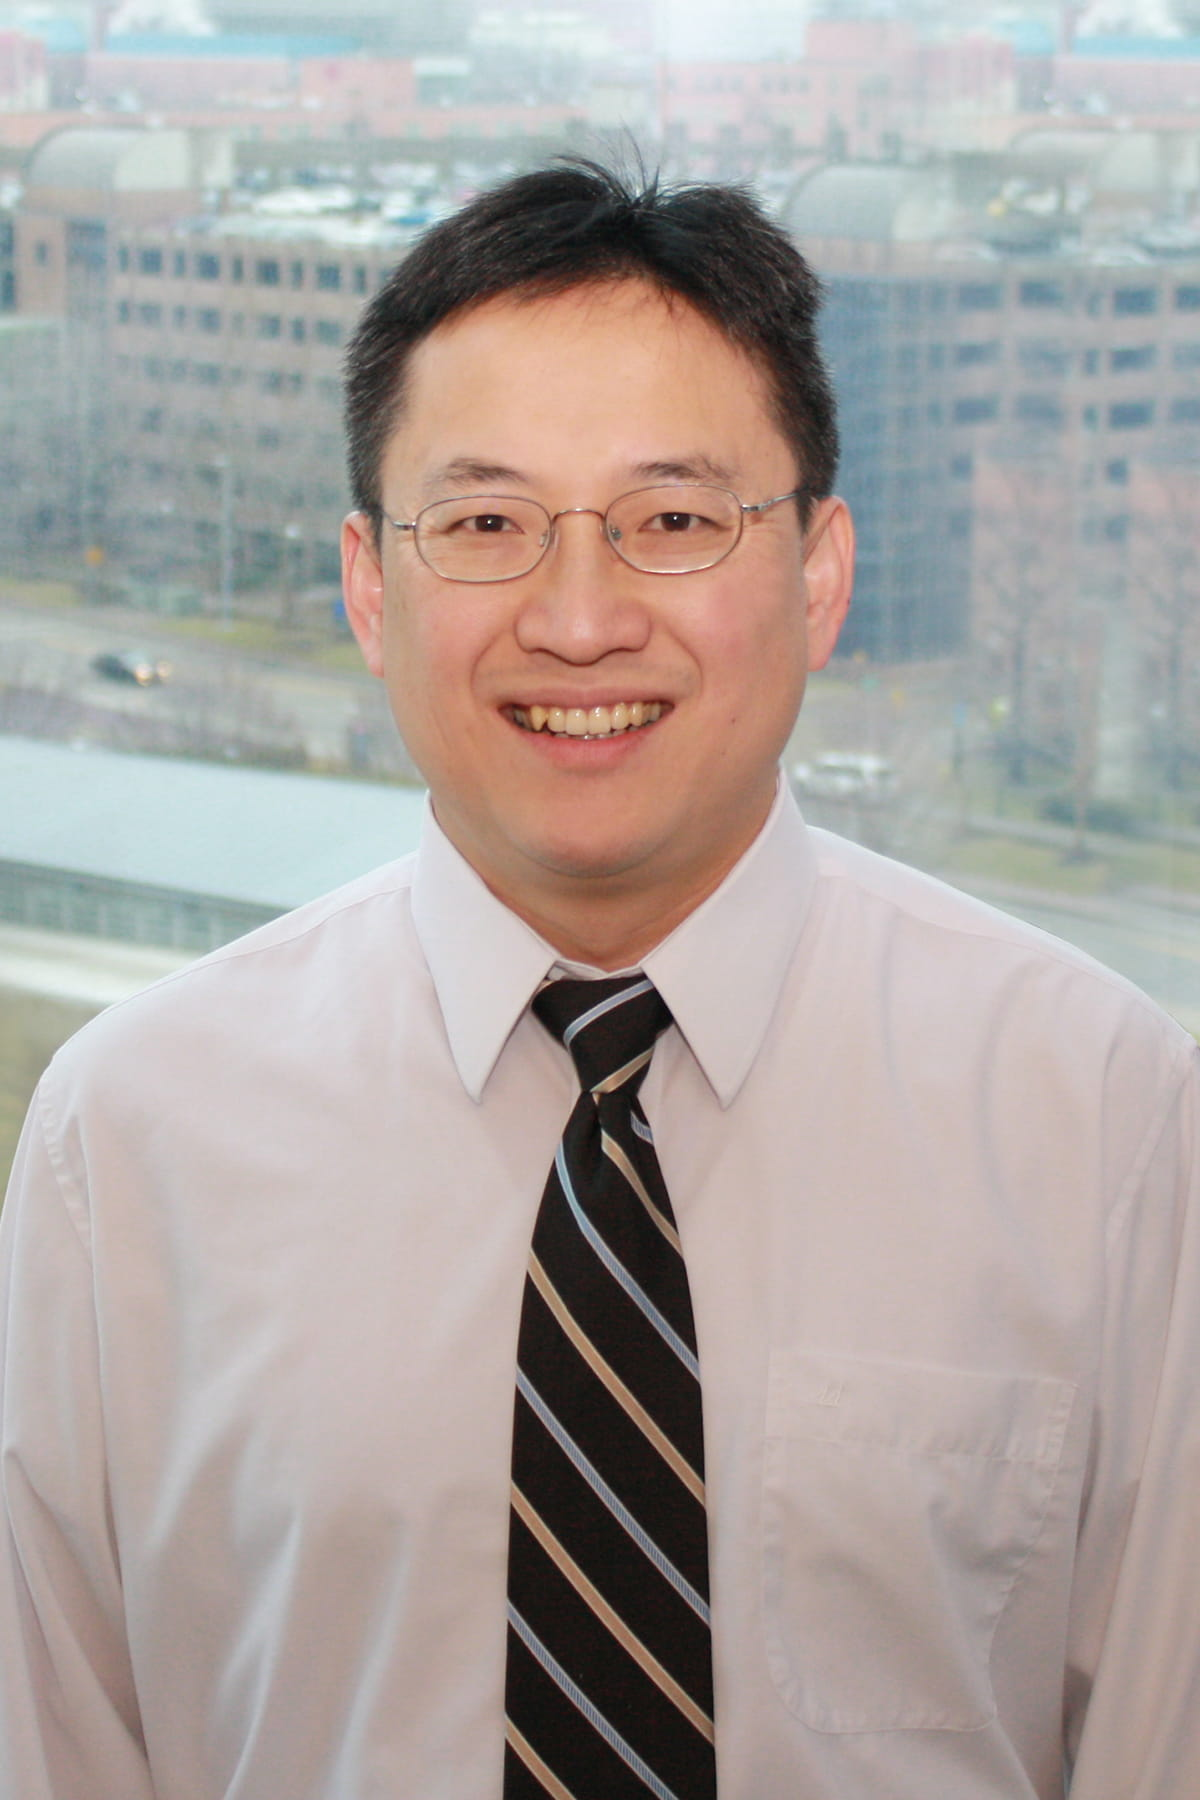 A photo of Steve W. Wu.